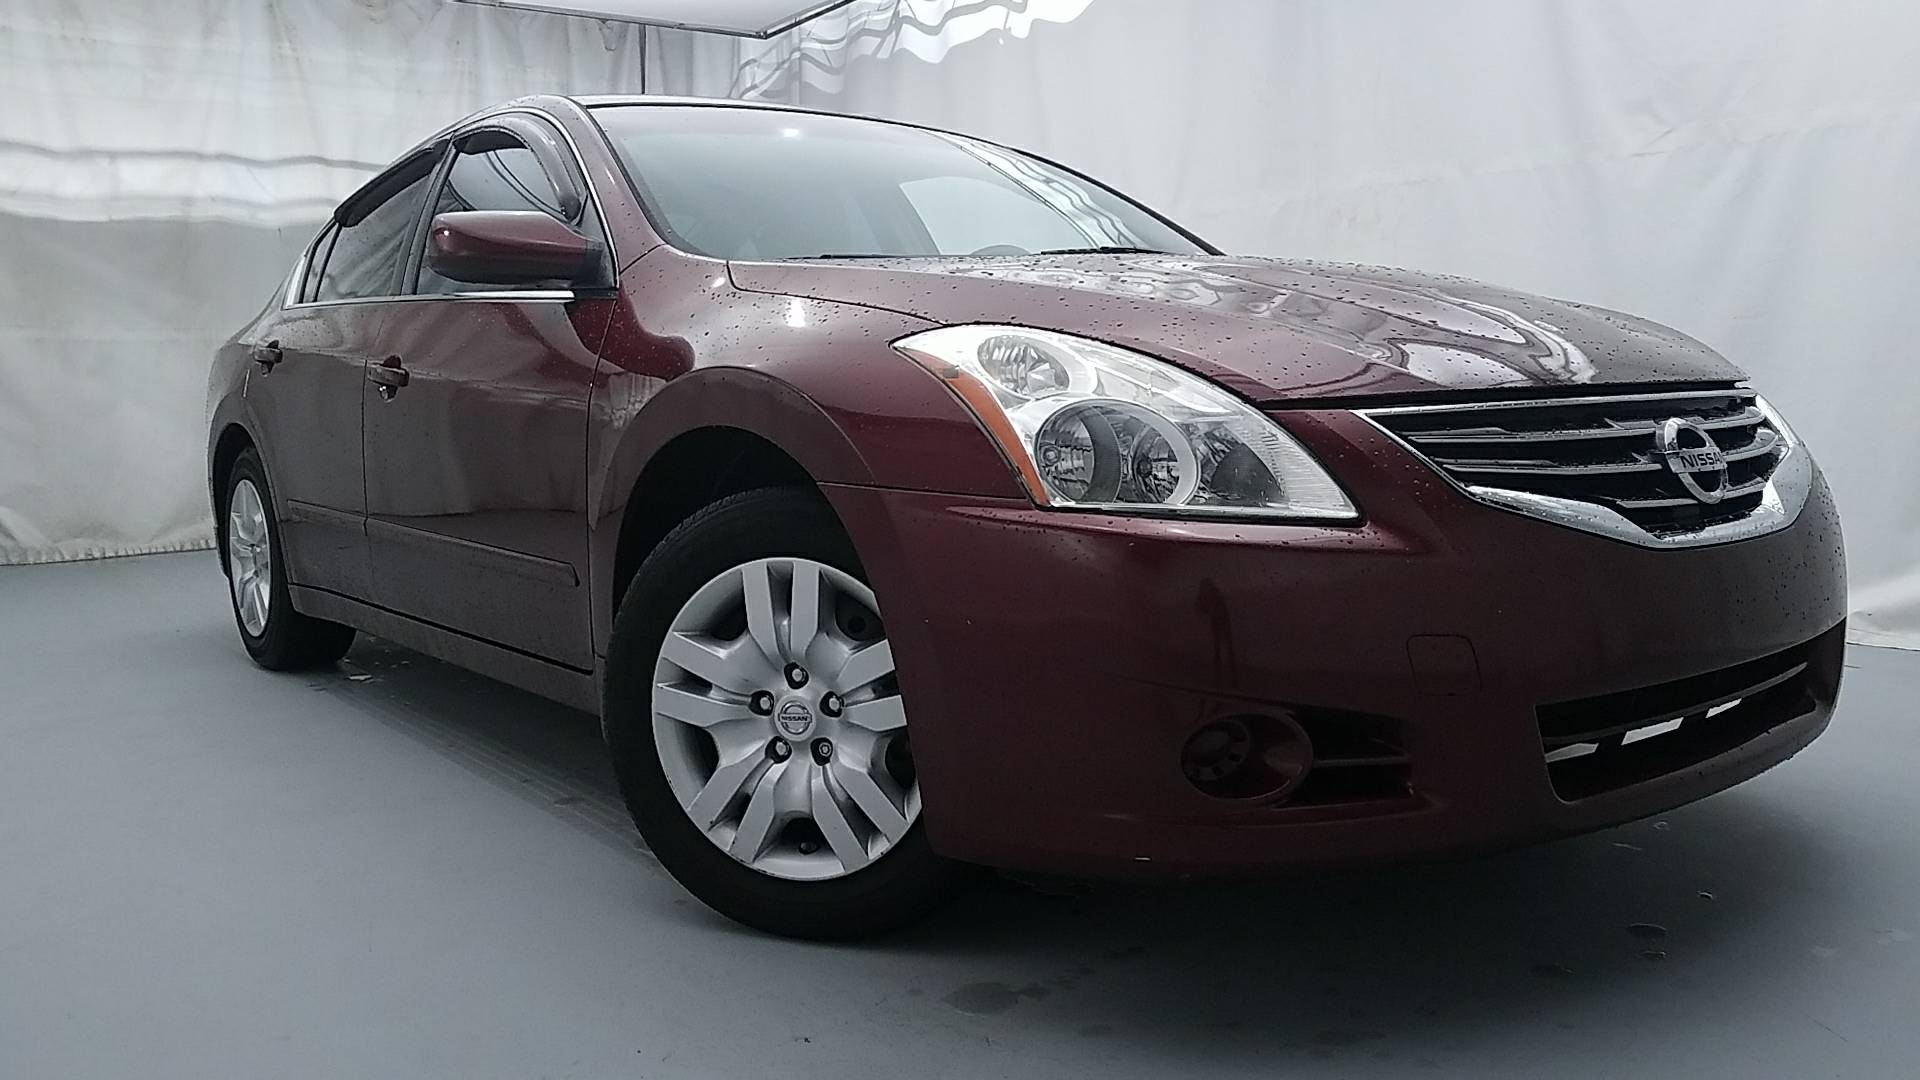 online of auto nissan sale carfinder on in la title gray copart auctions new lot en salvage orleans altima cert